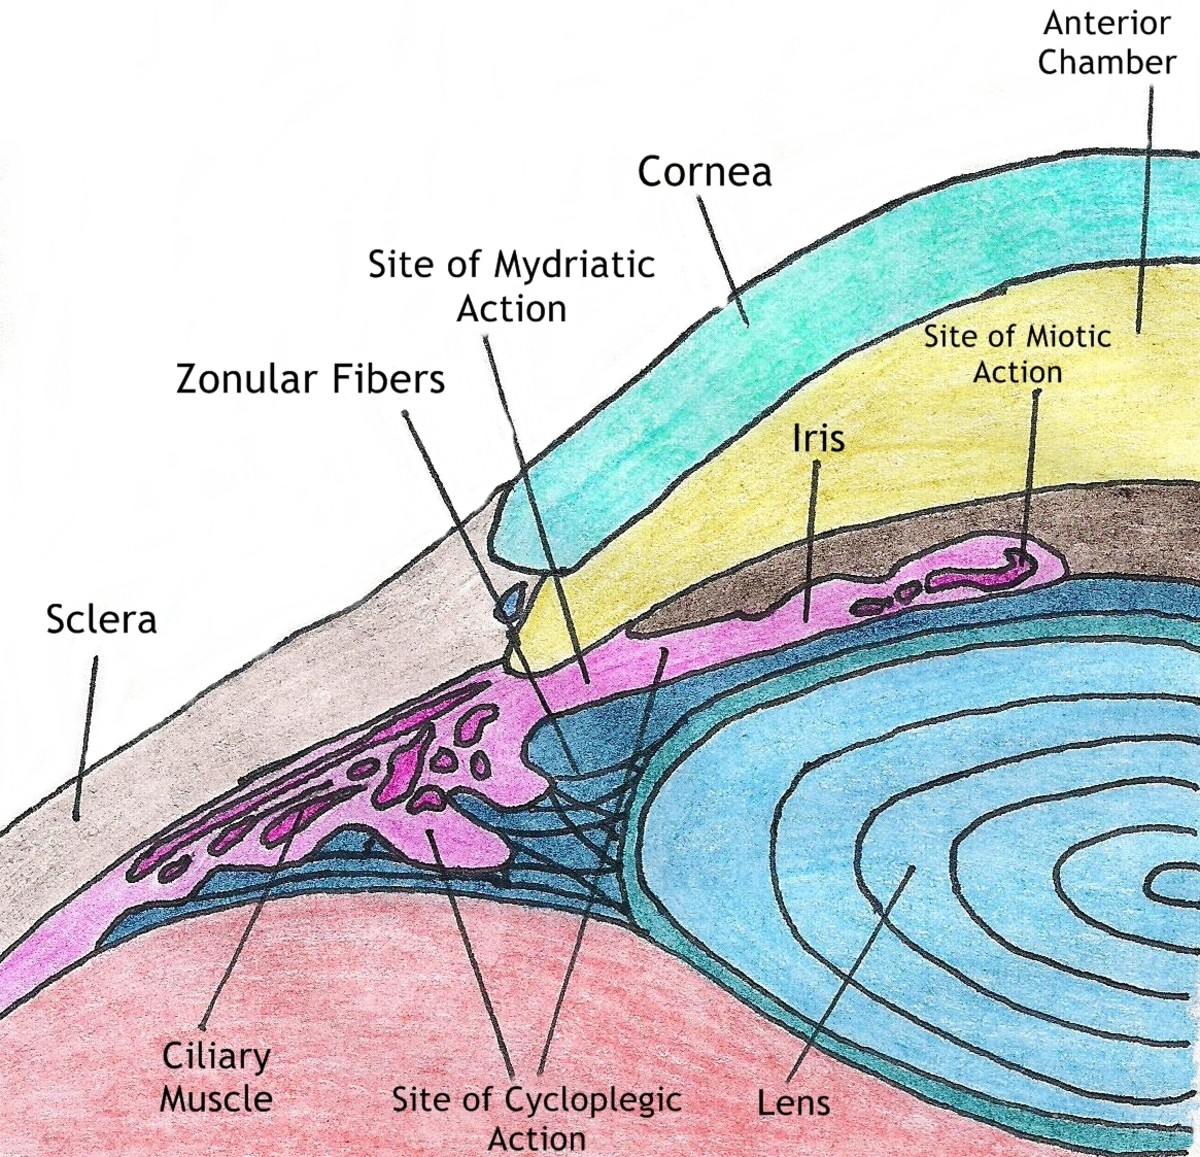 This drawing shows the anatomy of the iris as well as the structures involved in accommodation and dilation.